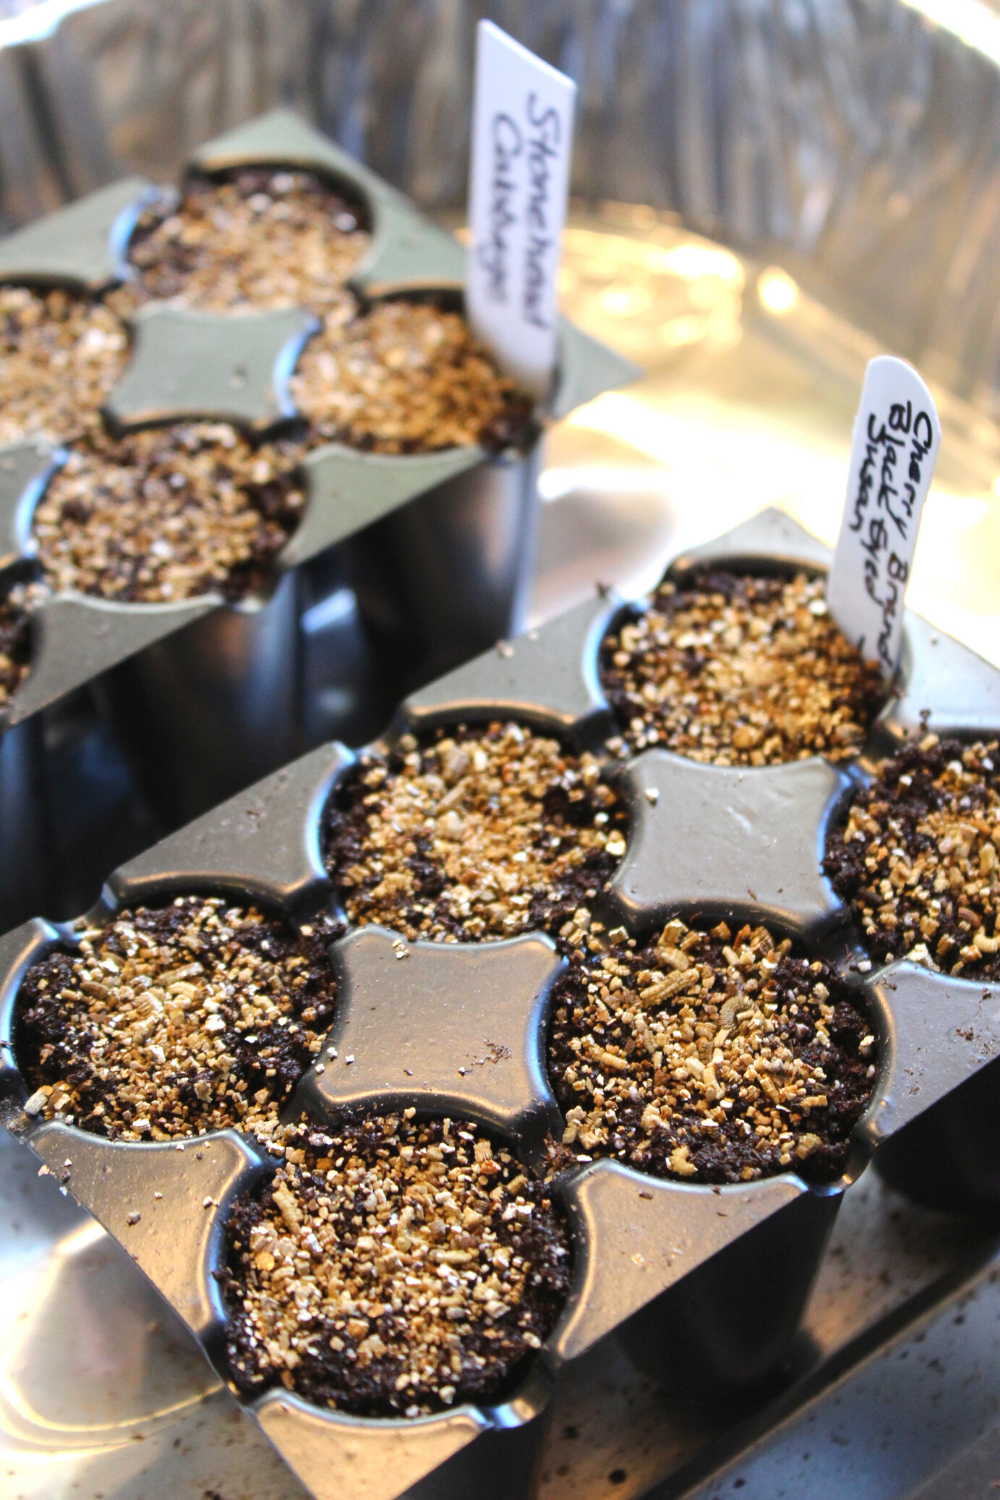 How To Start Seeds 101 Tips and Tricks for Starting Vegetable and Flower Seeds Indoors The Do's and Don'ts of Seed Starting My Farmhouse Table